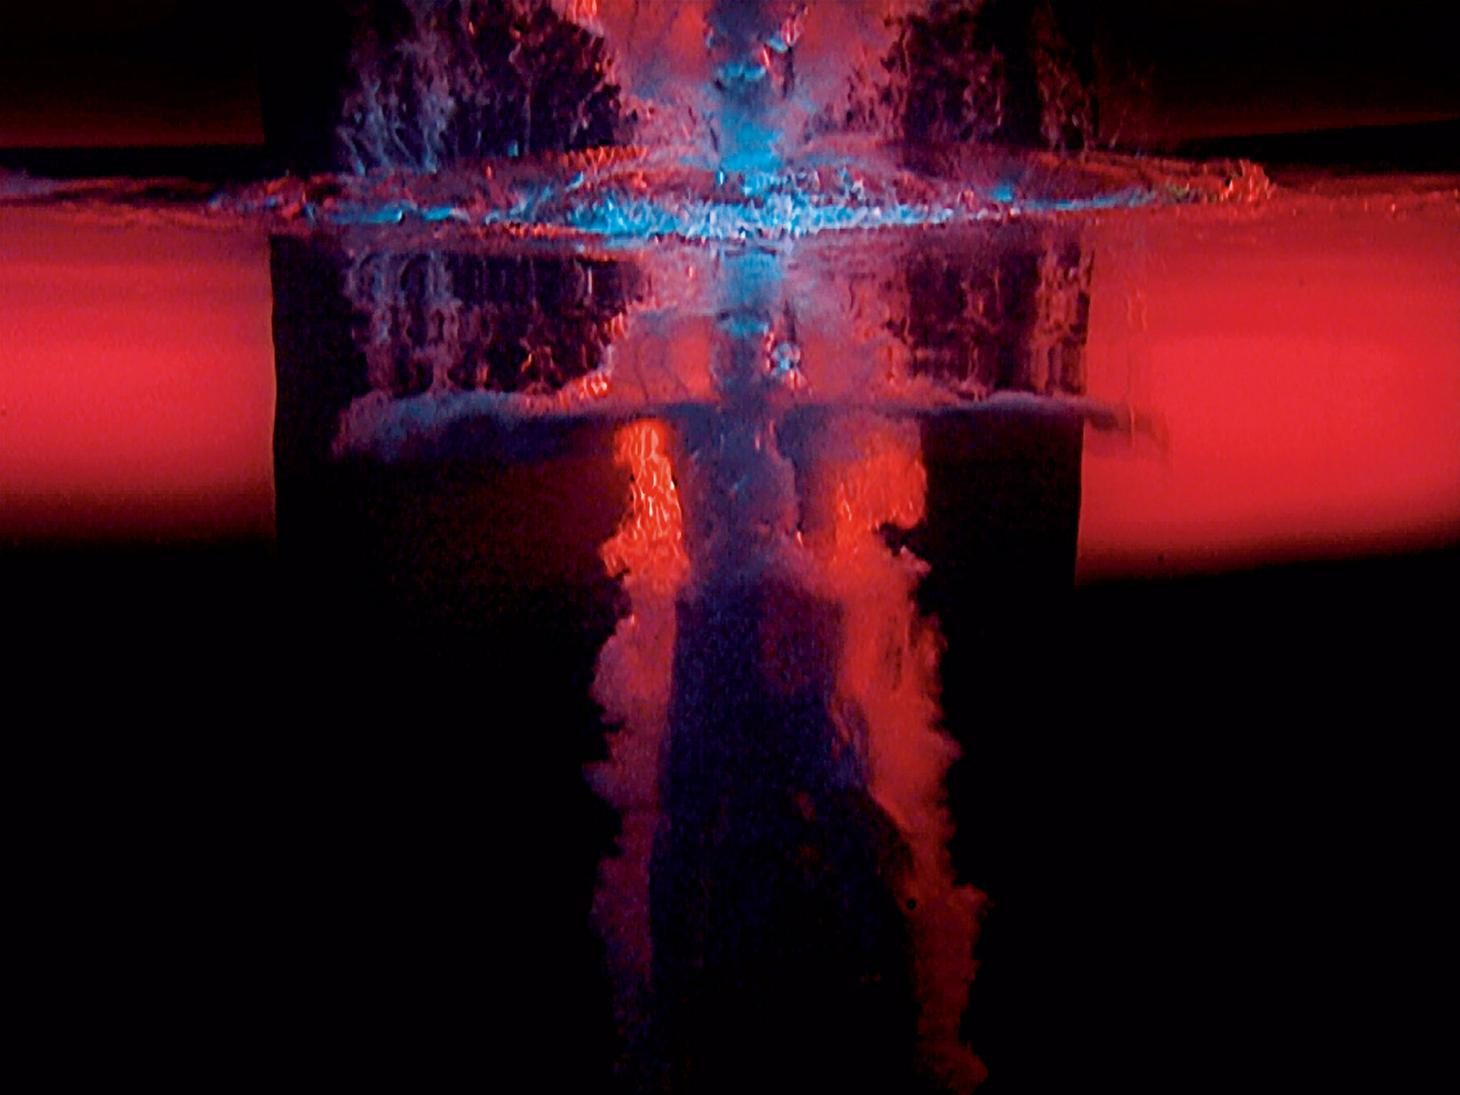 Fire Angel, panel 3 from Five Angels for the Millennium, 2001, by Bill Viola